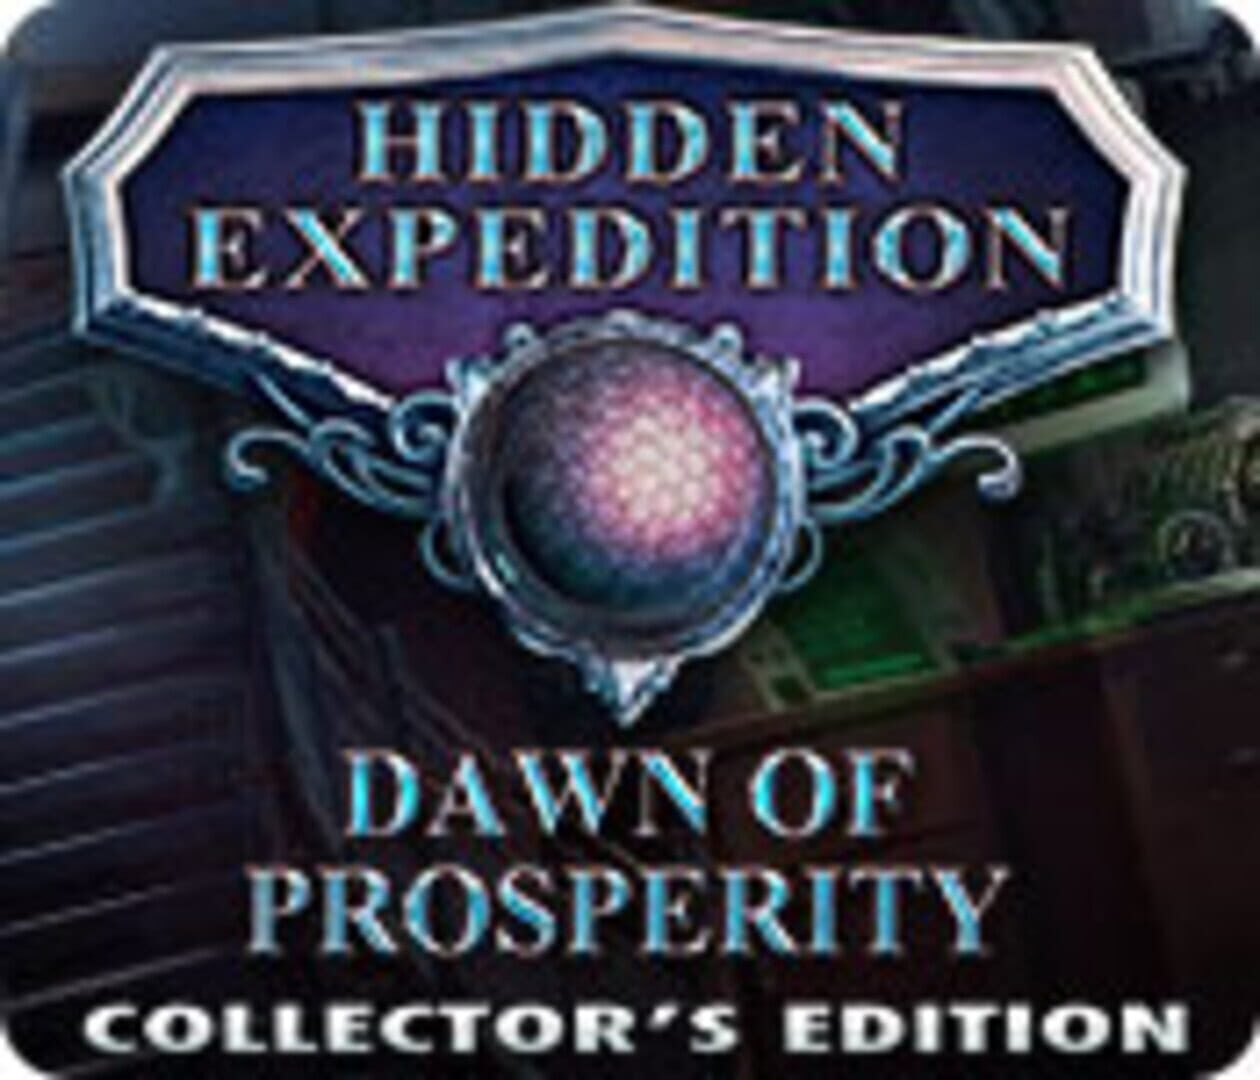 buy Hidden Expedition: Dawn of Prosperity cd key for all platform